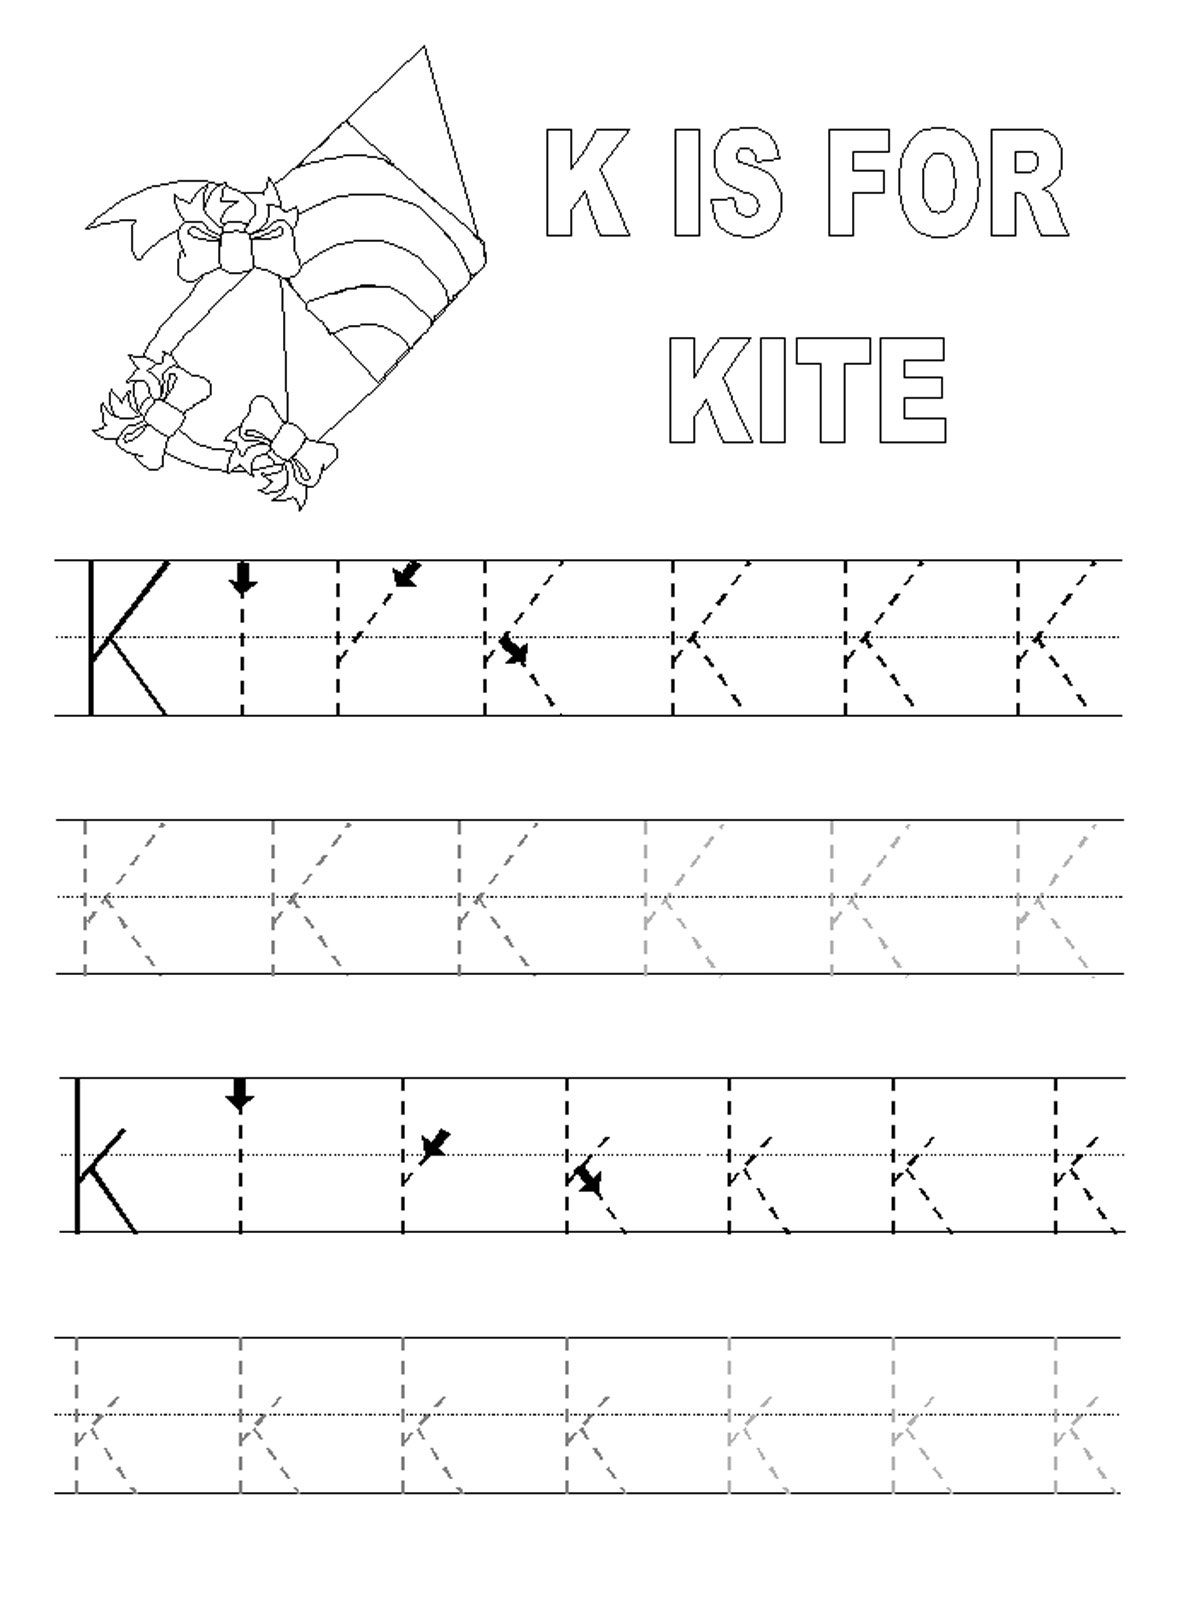 Worksheet Trace Letters trace the letters worksheets activity shelter kite